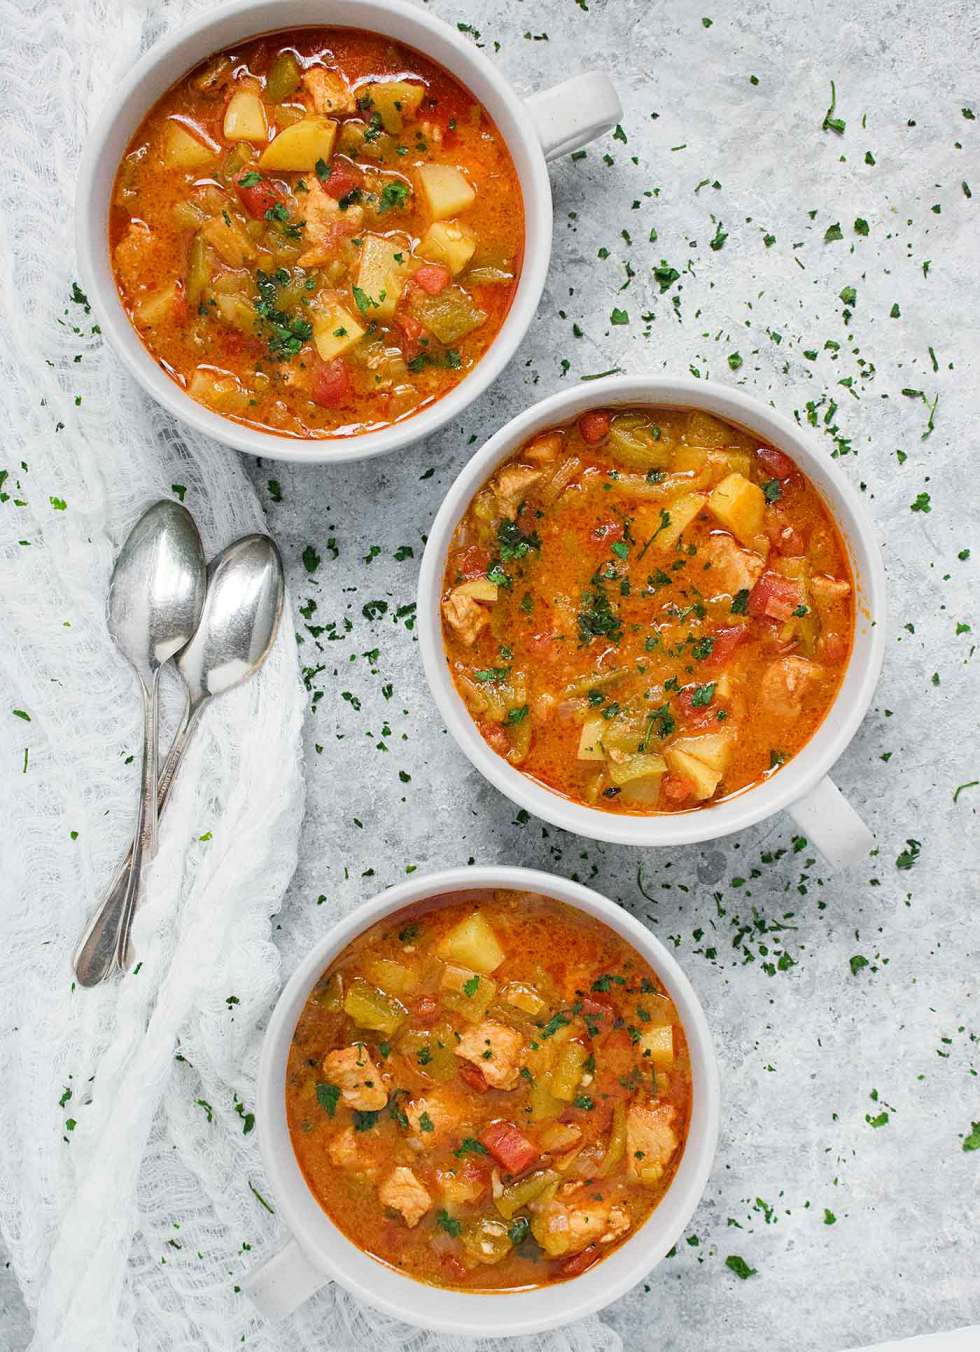 Three bowls of Green Chile Stew